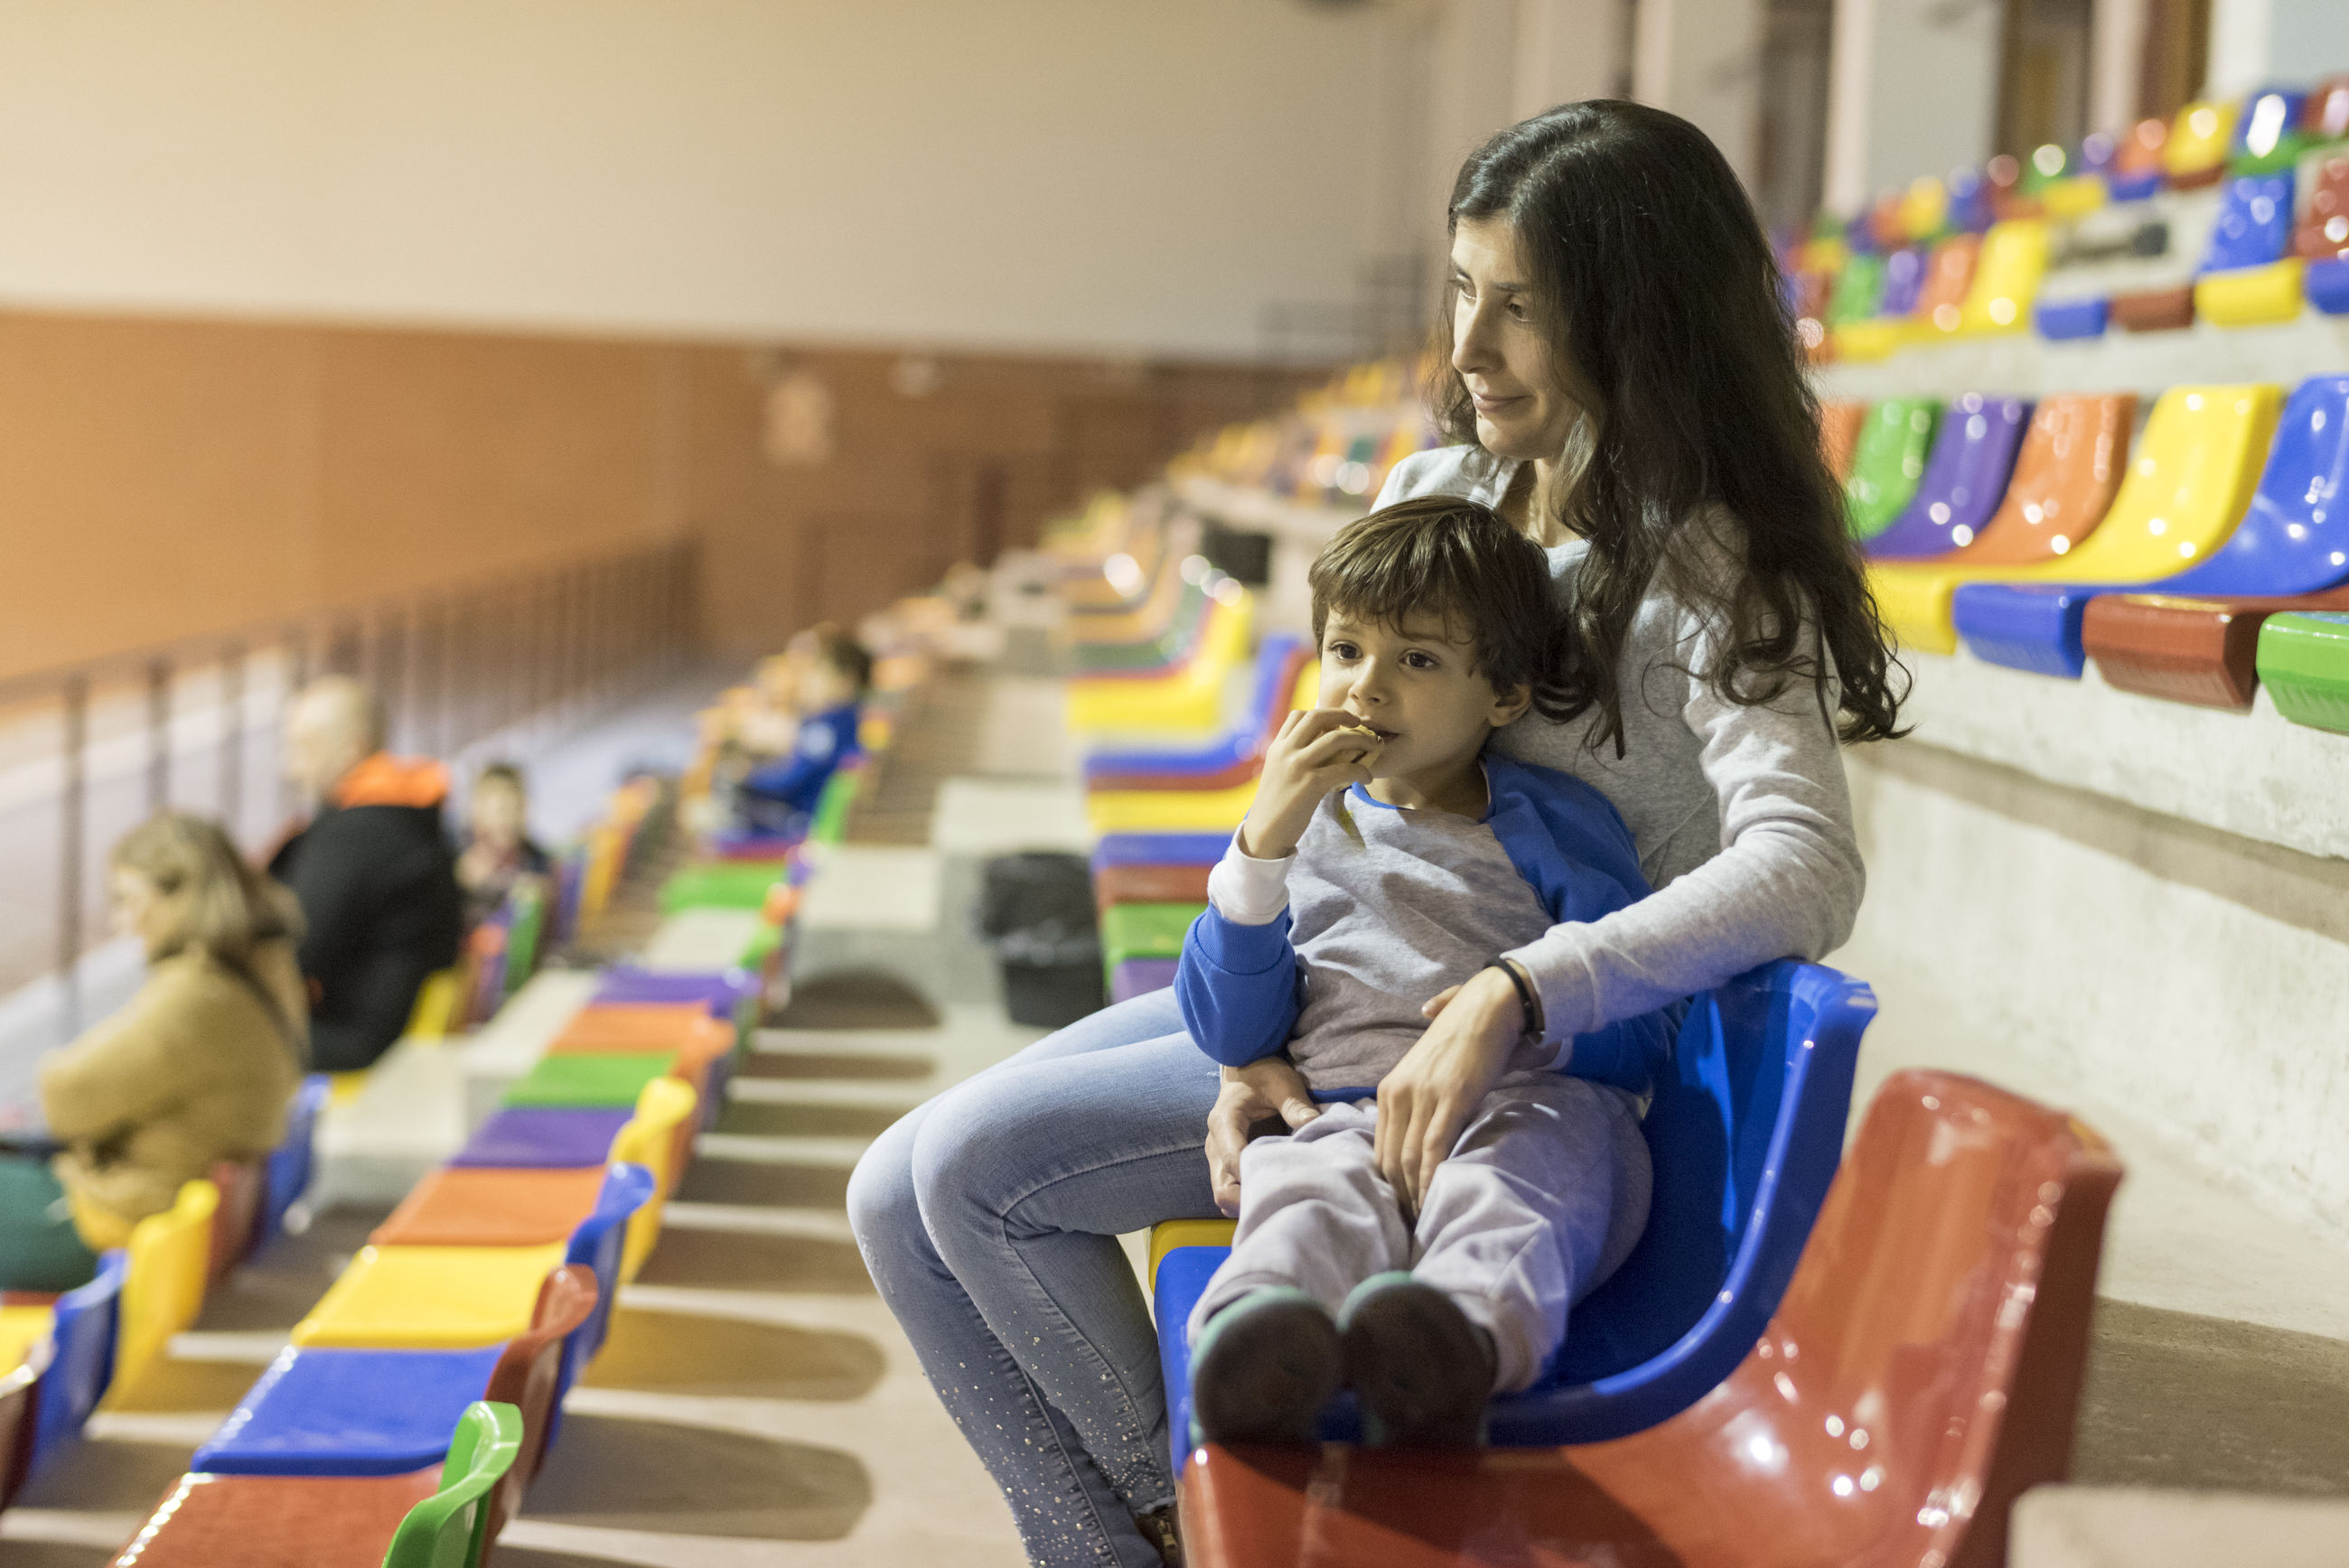 Mother sitting with son on seat